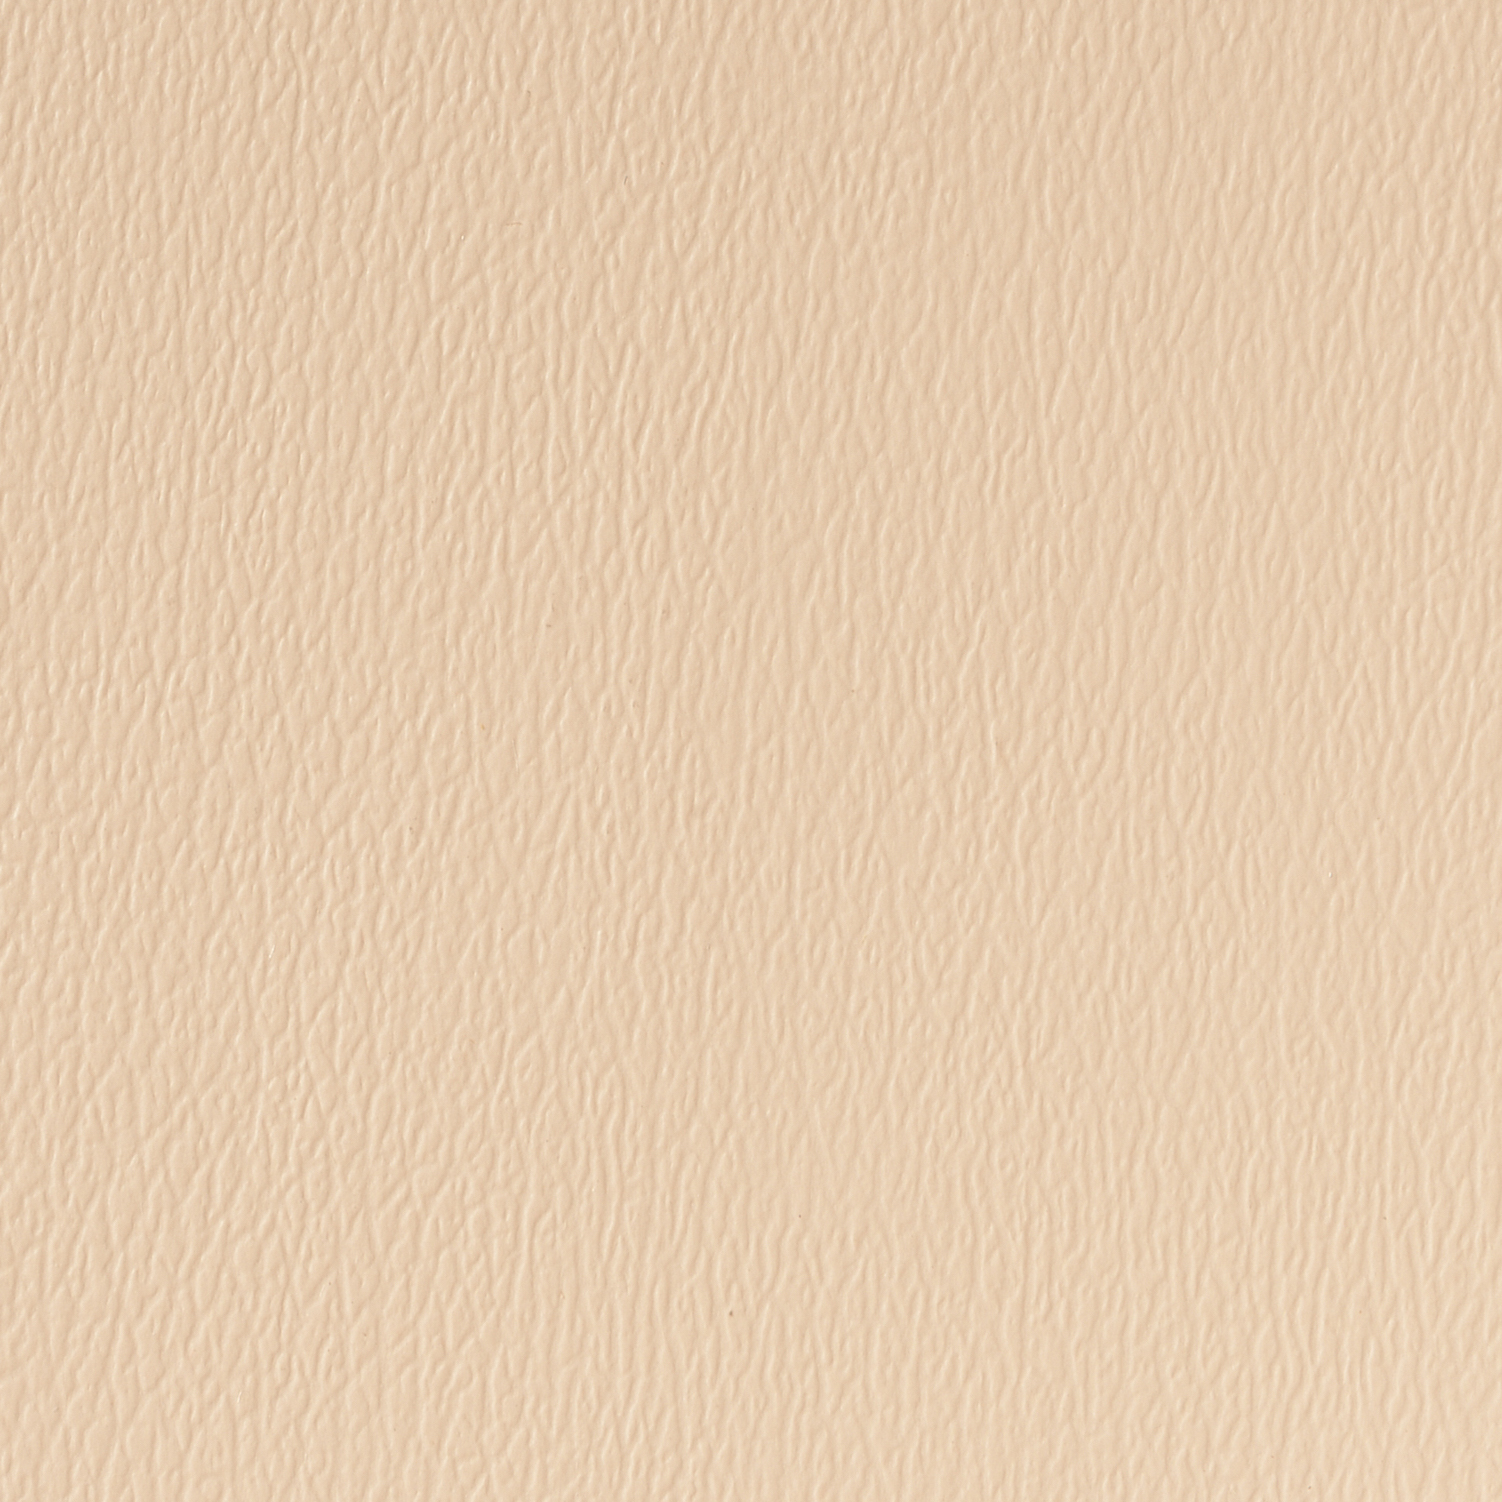 CORAL SAND   US-502